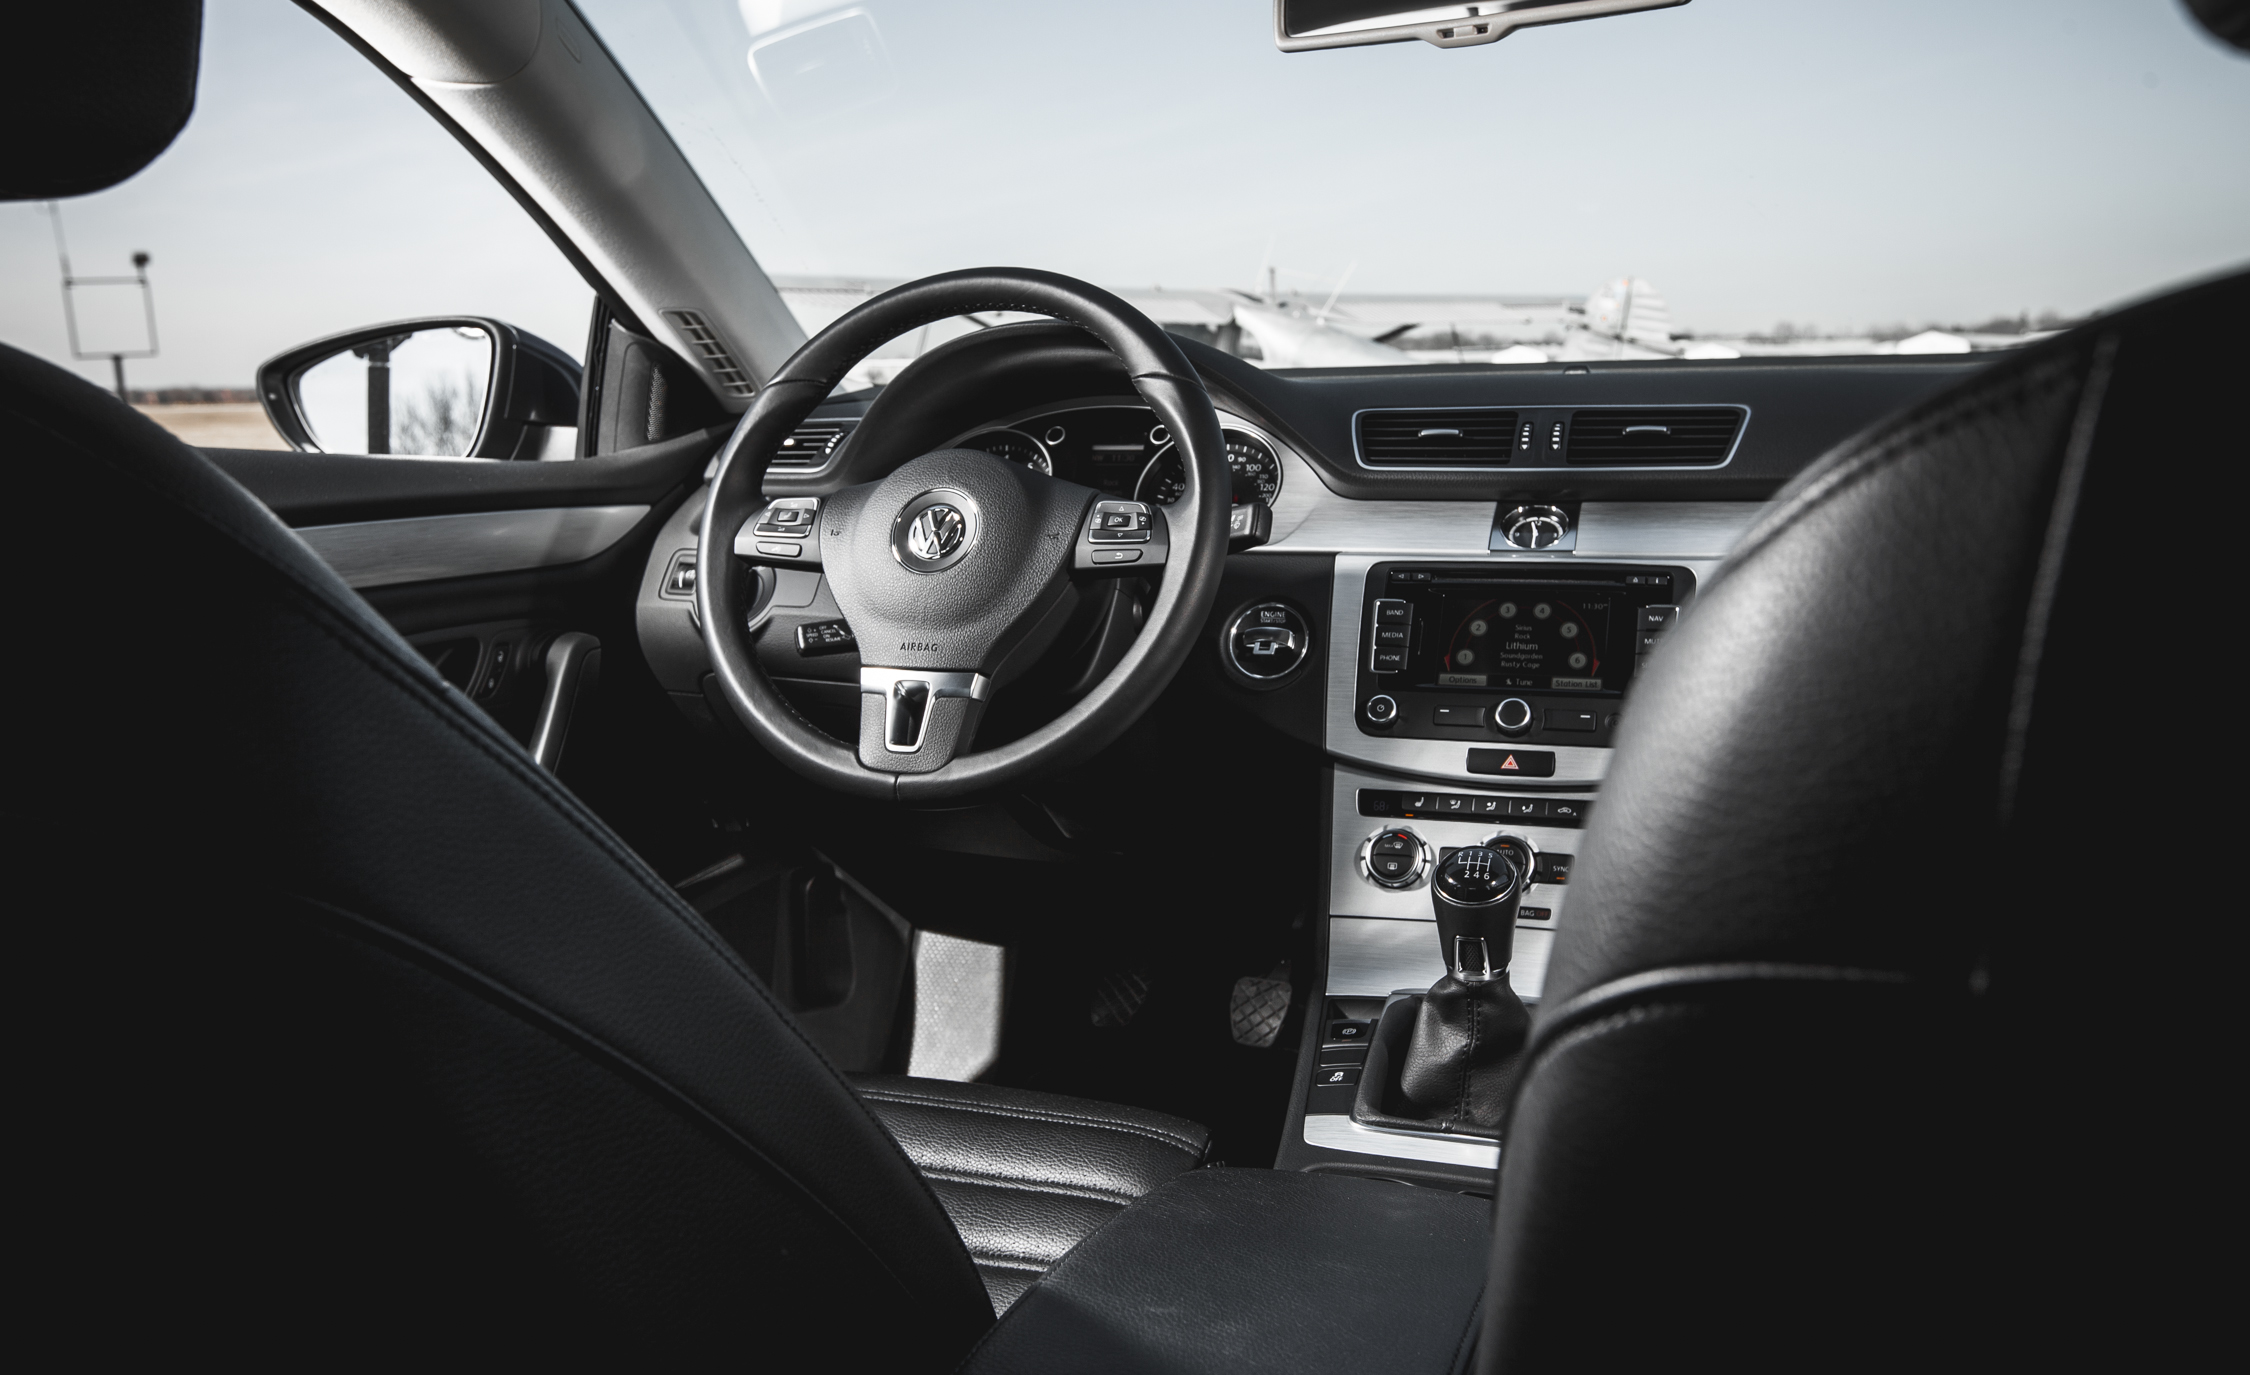 2015 Volkswagen CC Sport Interior (Photo 9 of 15)